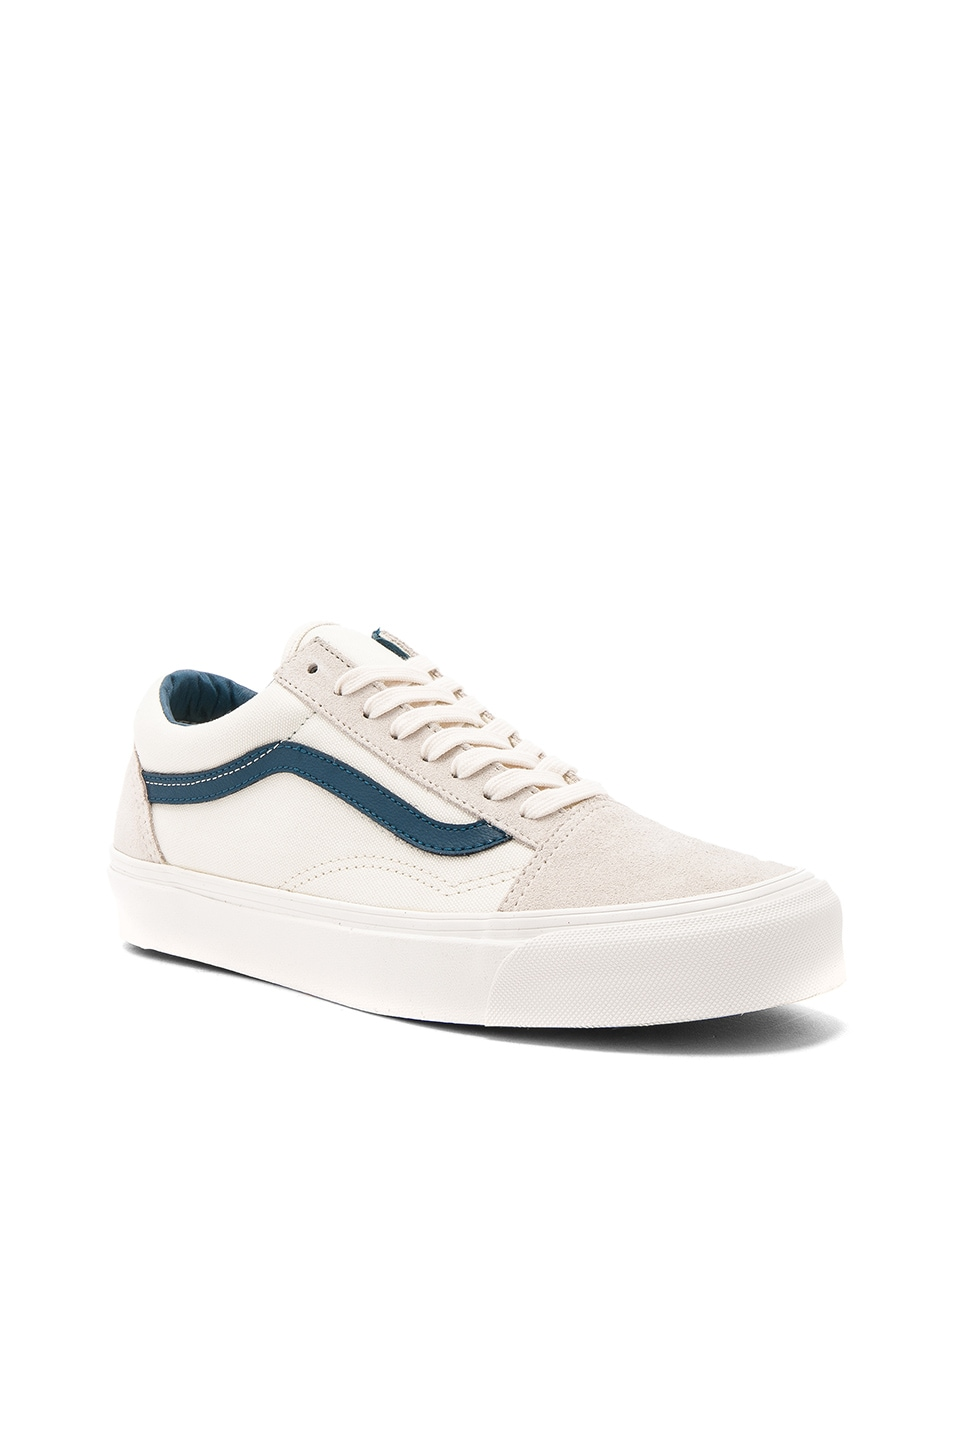 6ec928ae580f Image 1 of Vans Vault Canvas OG Old Skool LX in Marshmallow